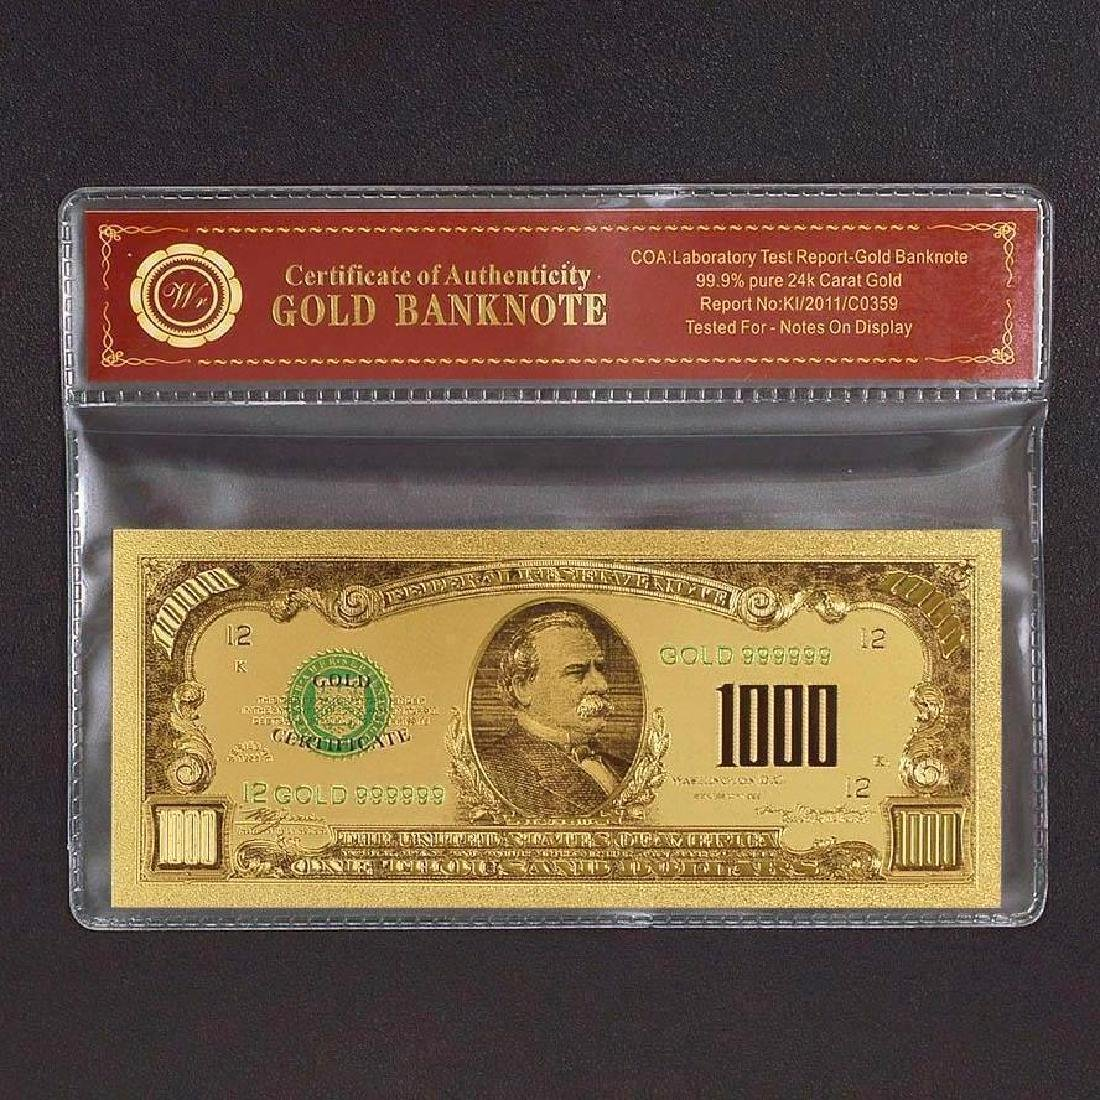 USA $1,000 24K Gold Clad Banknote